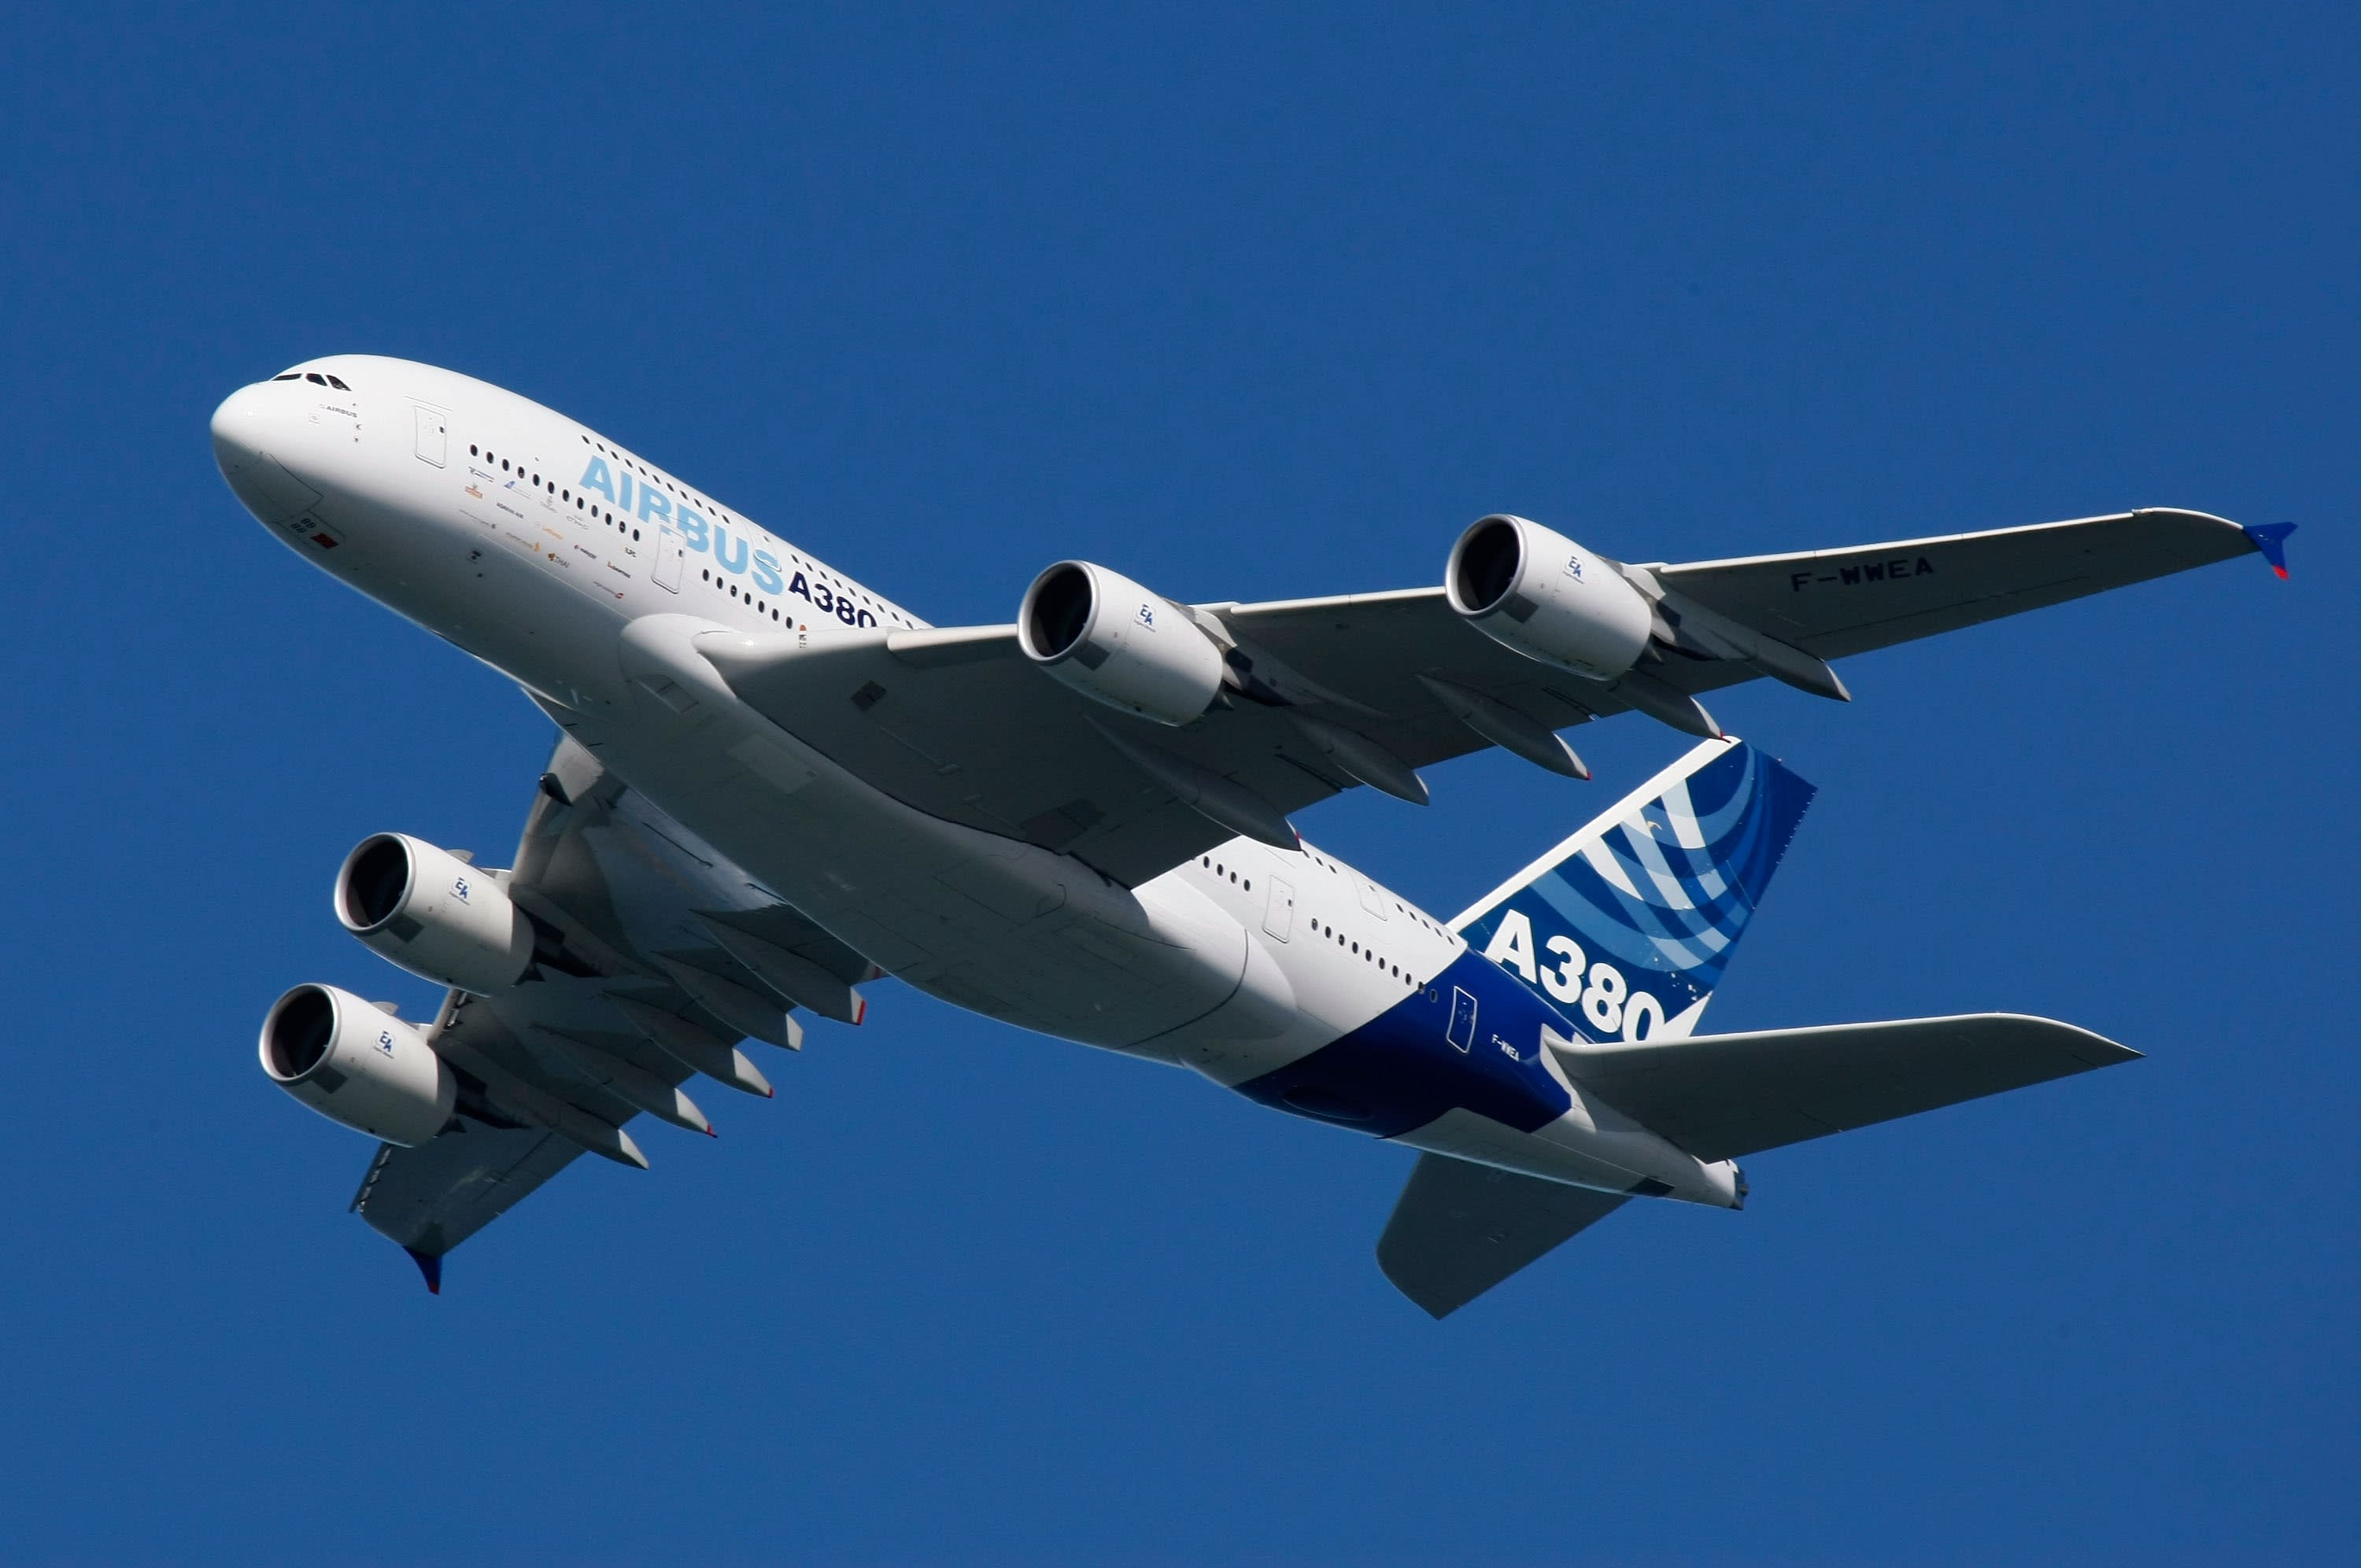 Airbus is eyeing the secondhand market as it continues to promote the A380